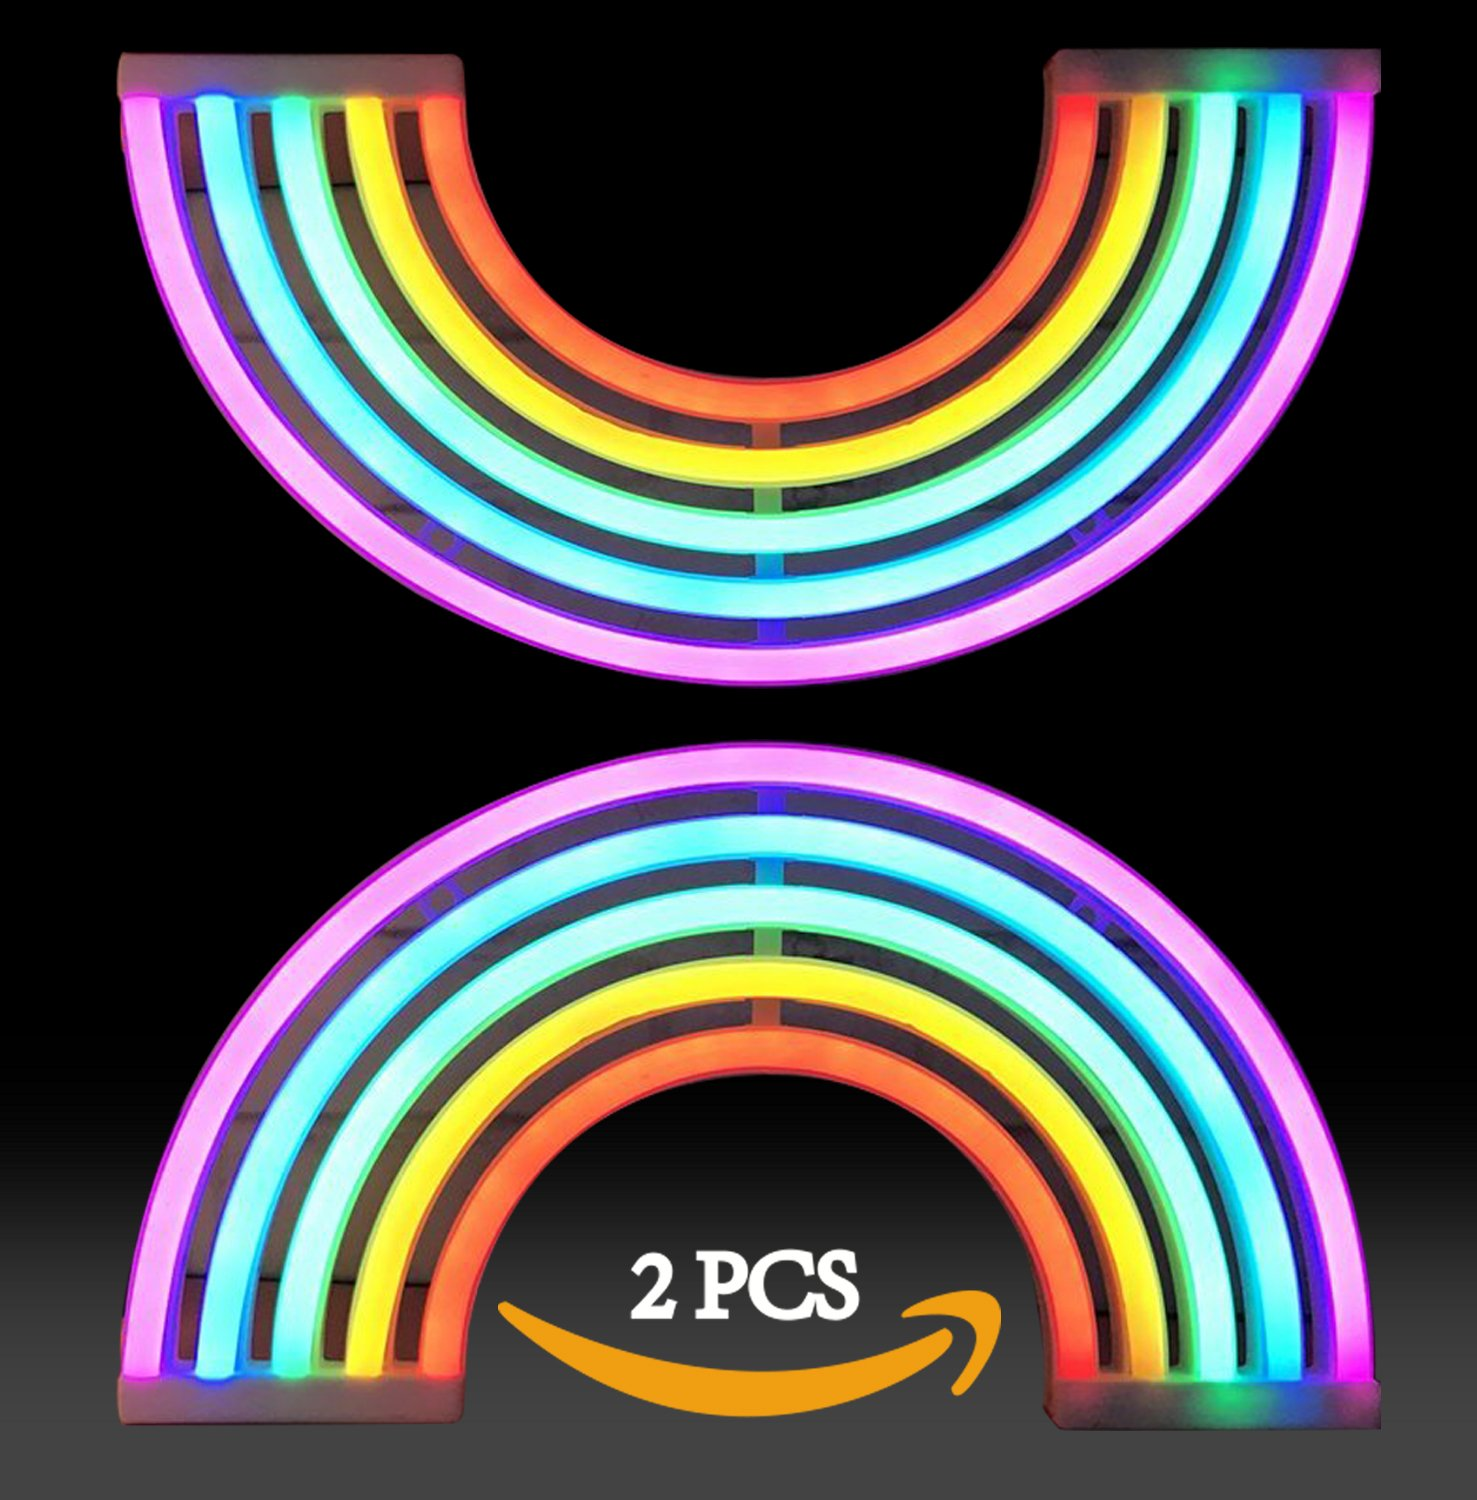 AIZESI 2PCS Rainbow Neon Light Sign,Neon Table Lamps,Marquee Battery Or USB Operated Table Led Ligths Wall Decoration for Girls Bedroom,Living Room,ChristmasParty as Kids Gift (Rainbow) by AIZESI (Image #2)